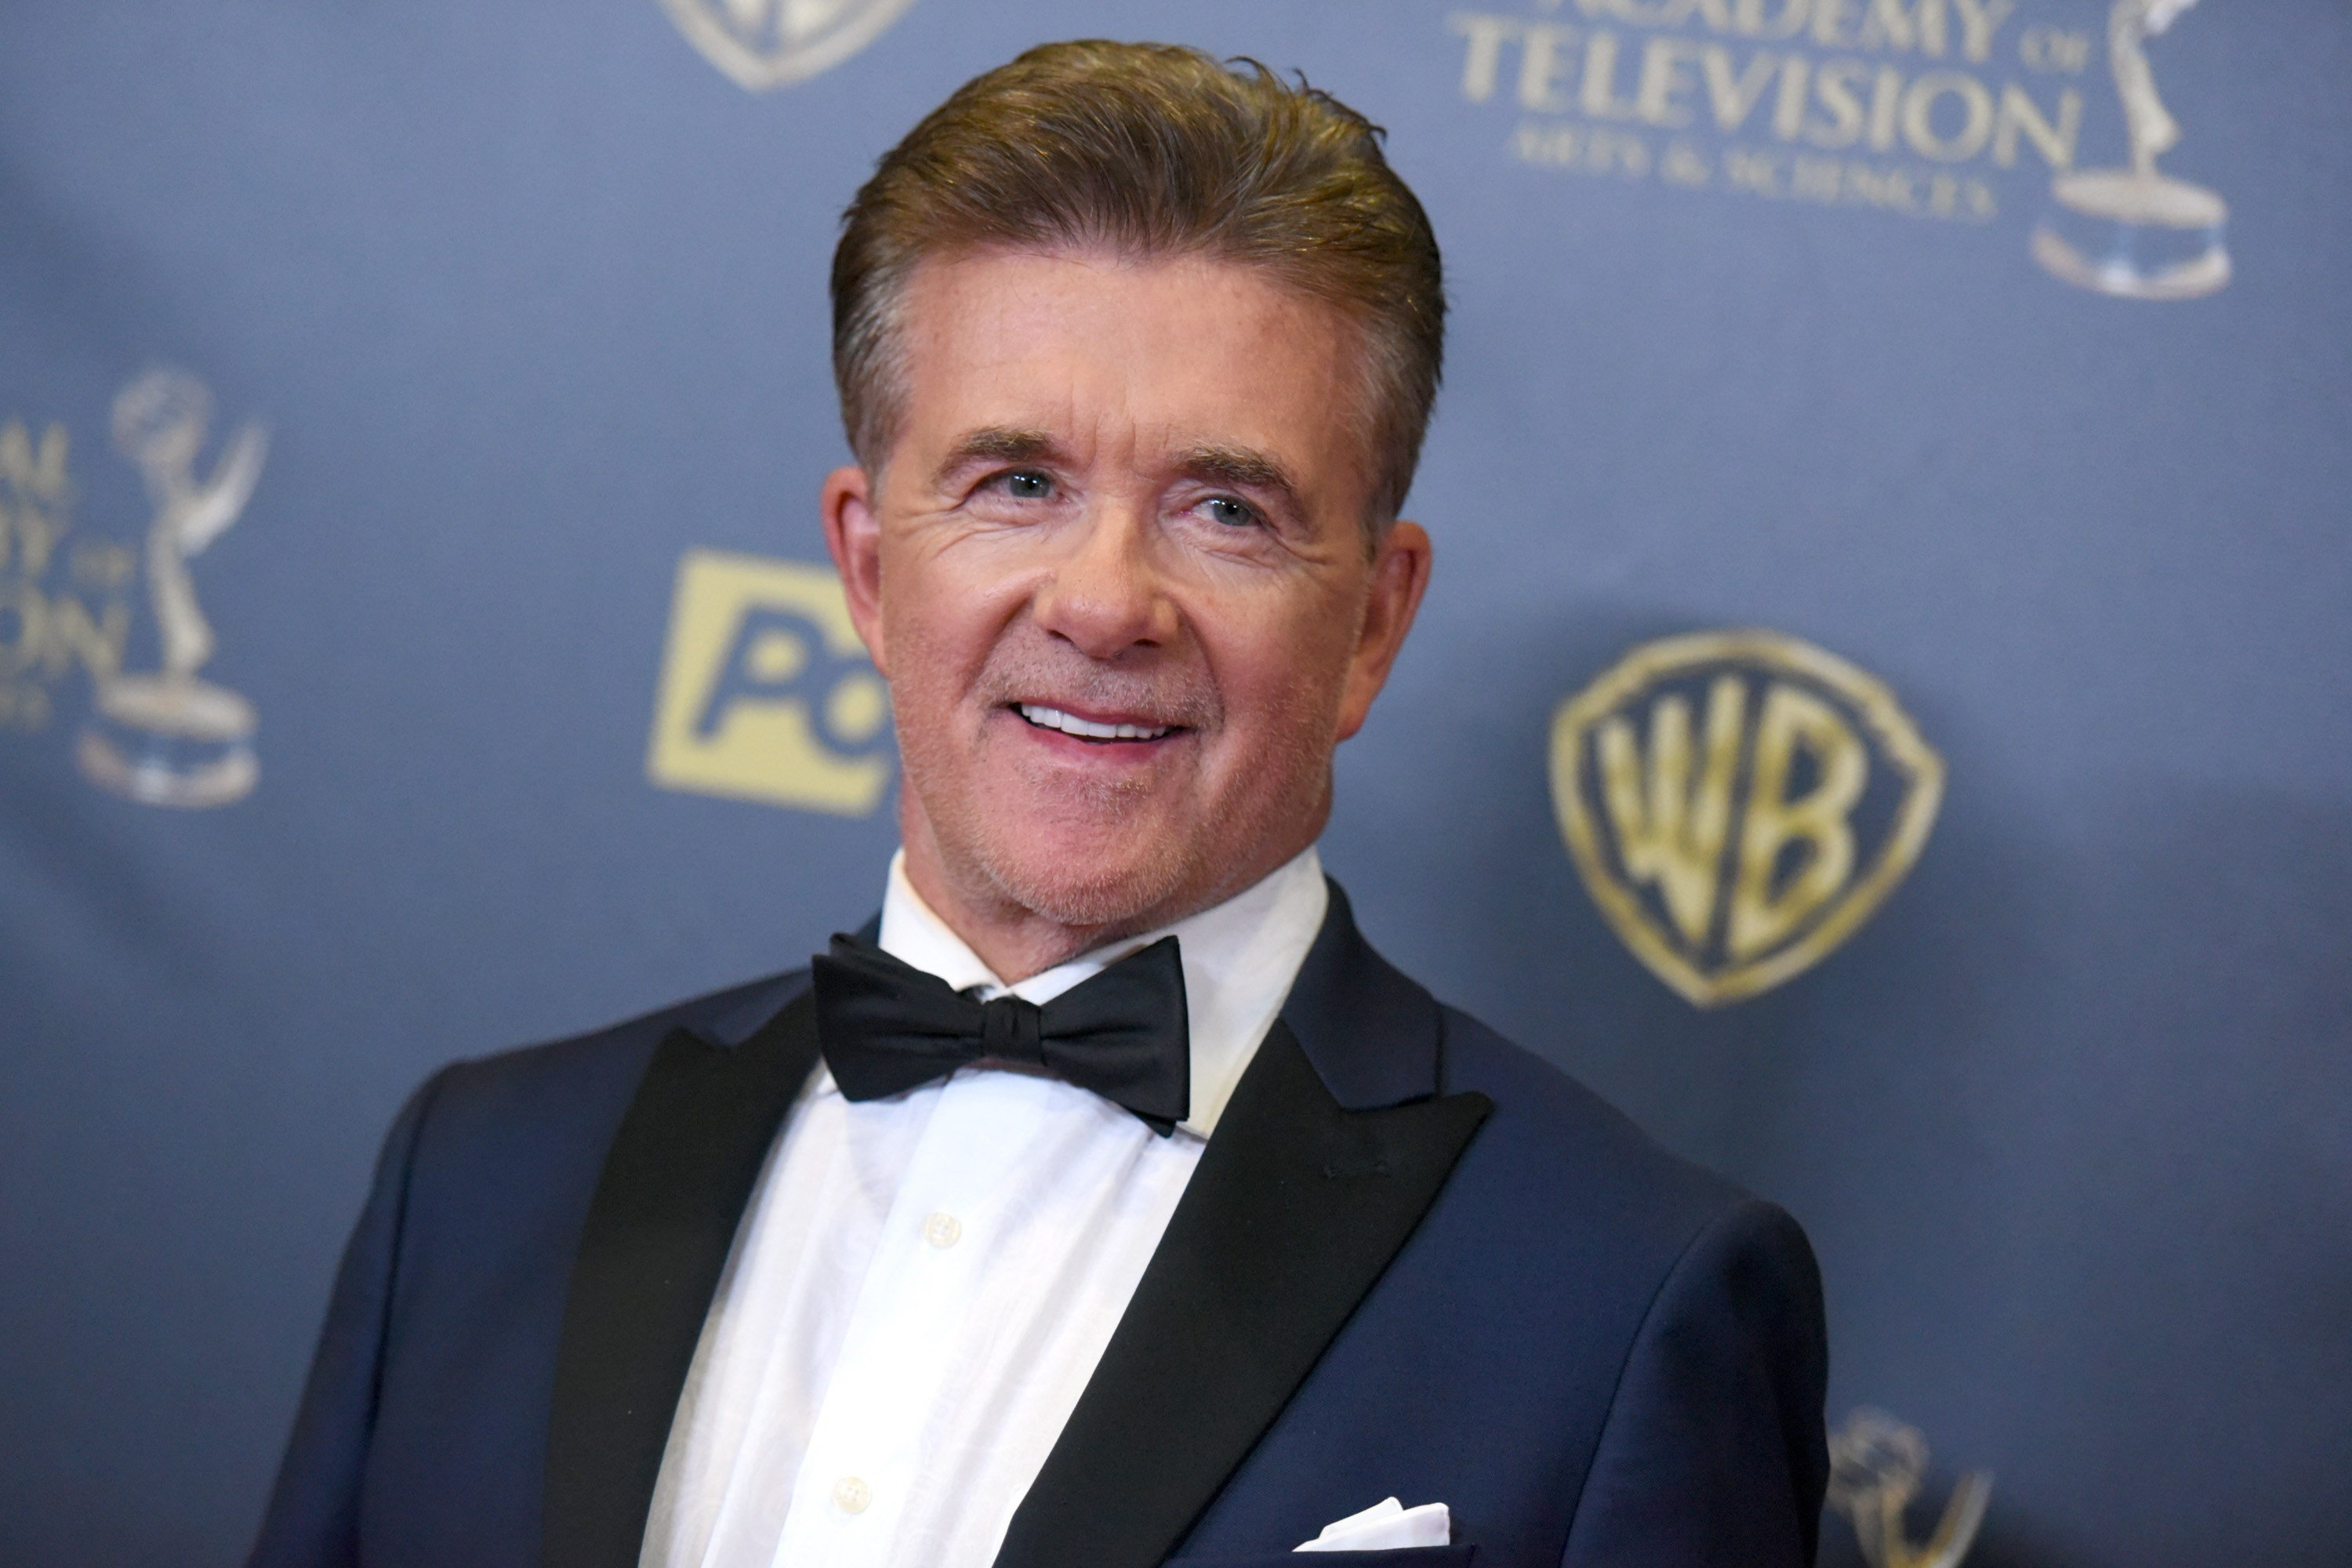 Alan Thicke poses in the pressroom at the 42nd annual Daytime Emmy Awards at Warner Bros. Studios on Sunday, April 26, 2015, in Burbank, Calif. (Photo by Richard Shotwell/Invision/AP)